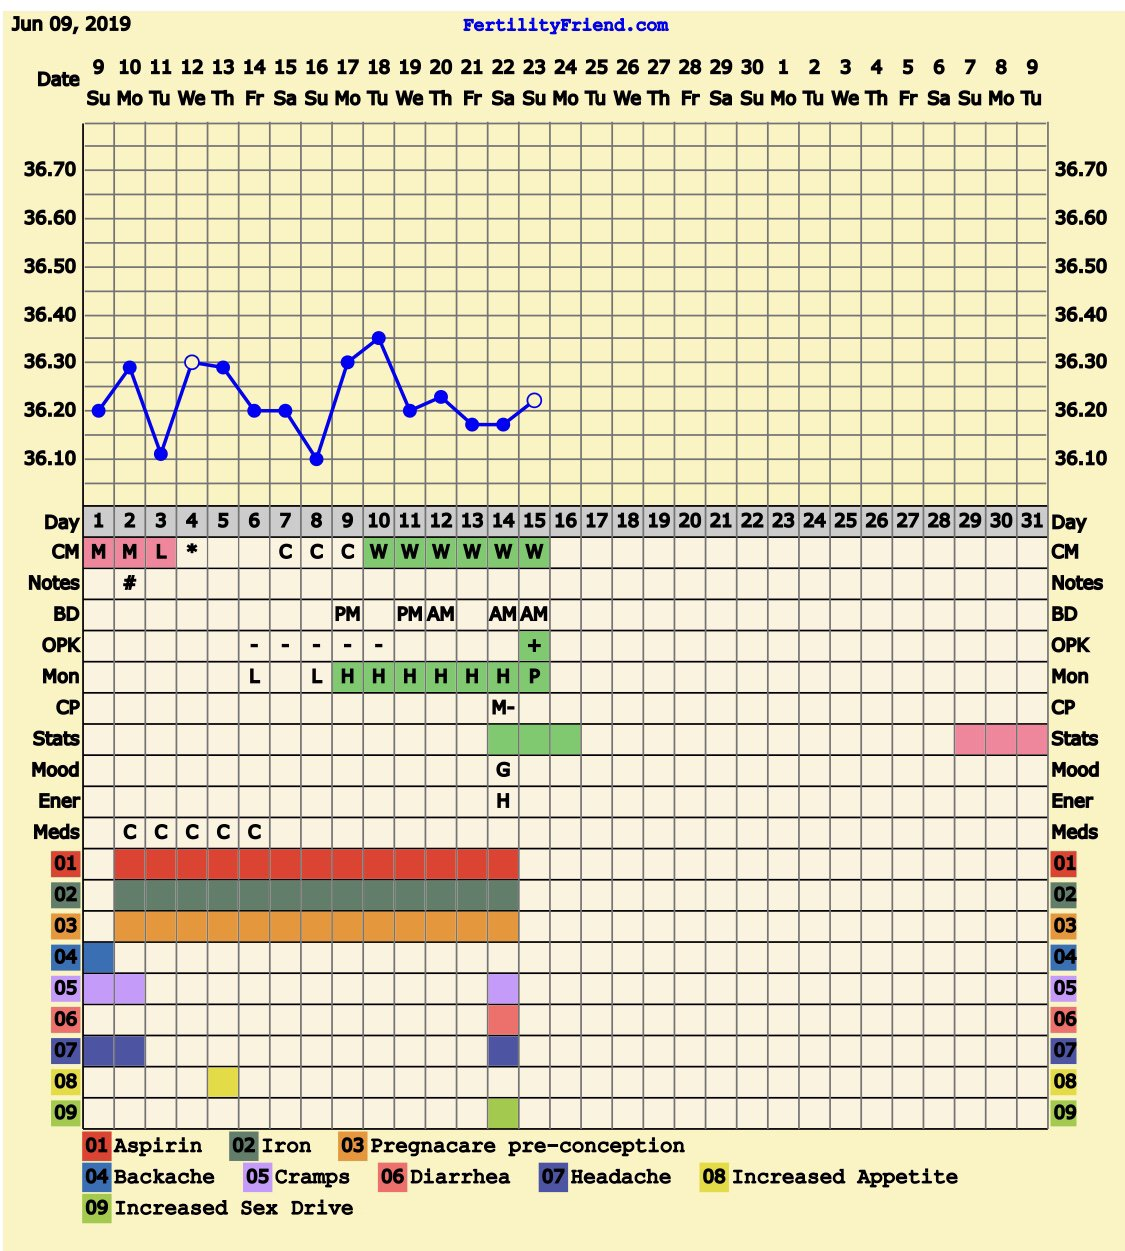 31 Day Cycle Bfp